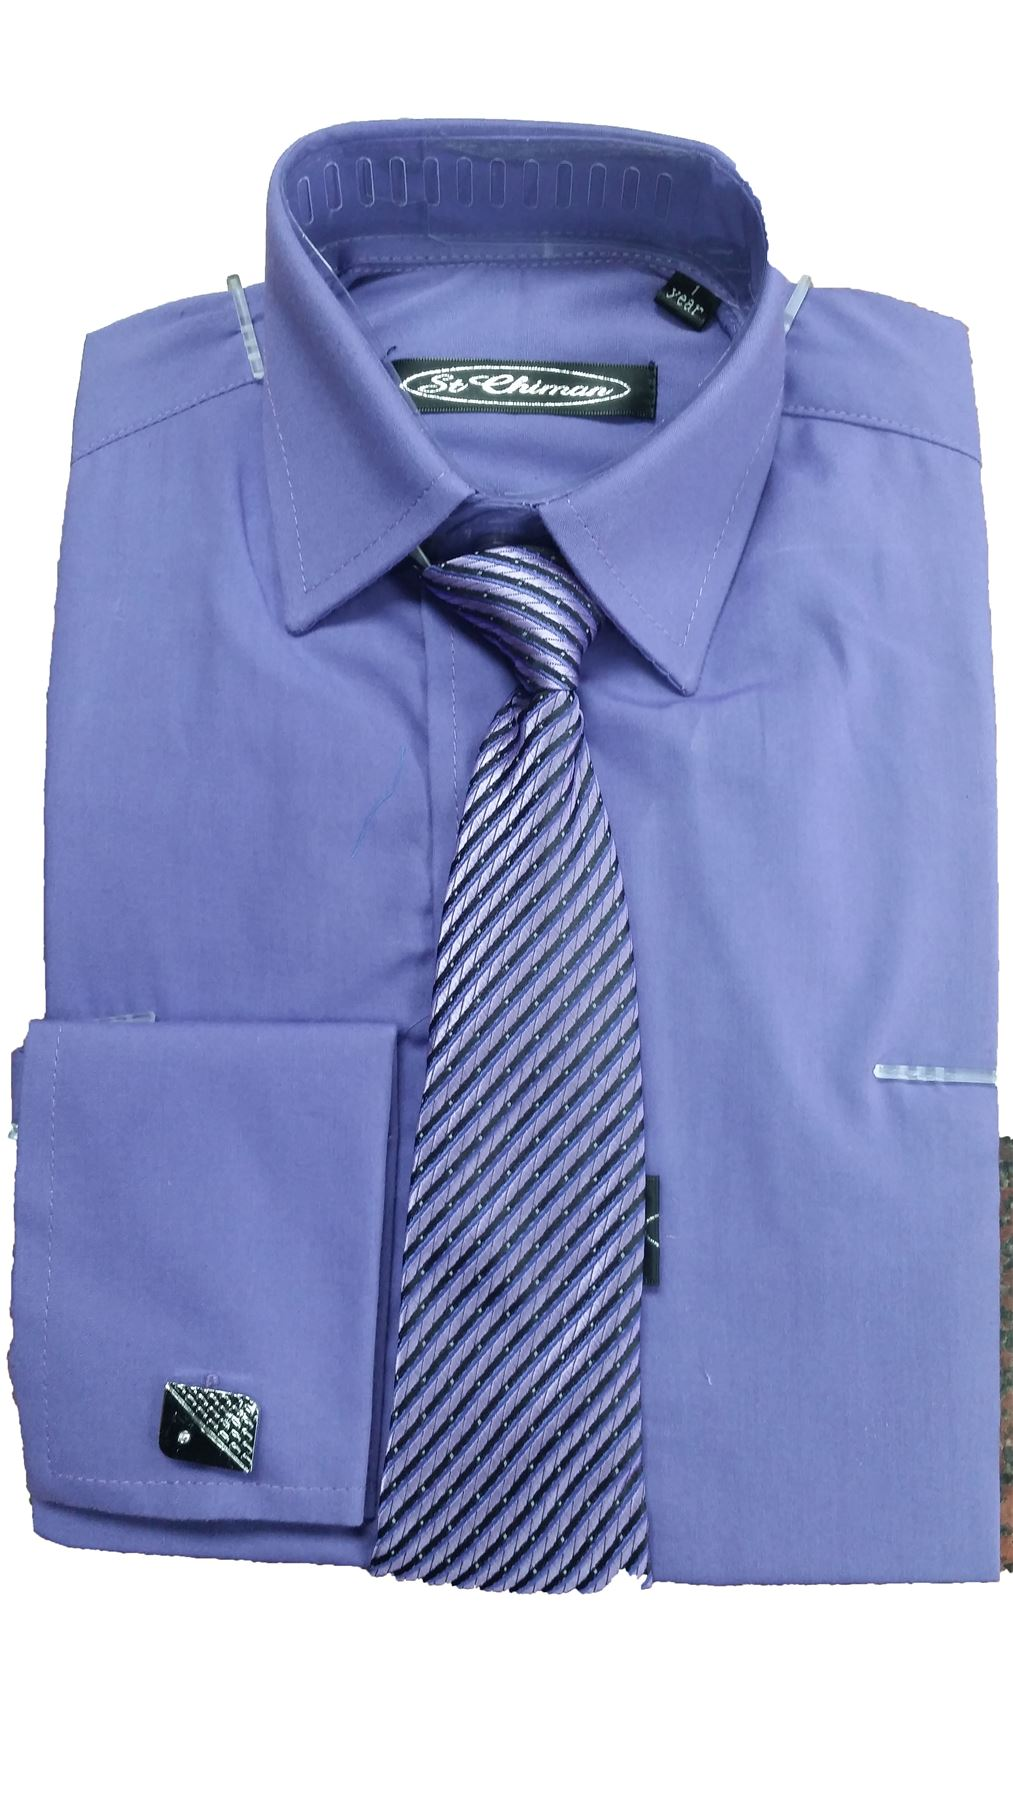 Boys Formal Occasion Smart Shirts With Tie Cufflinks